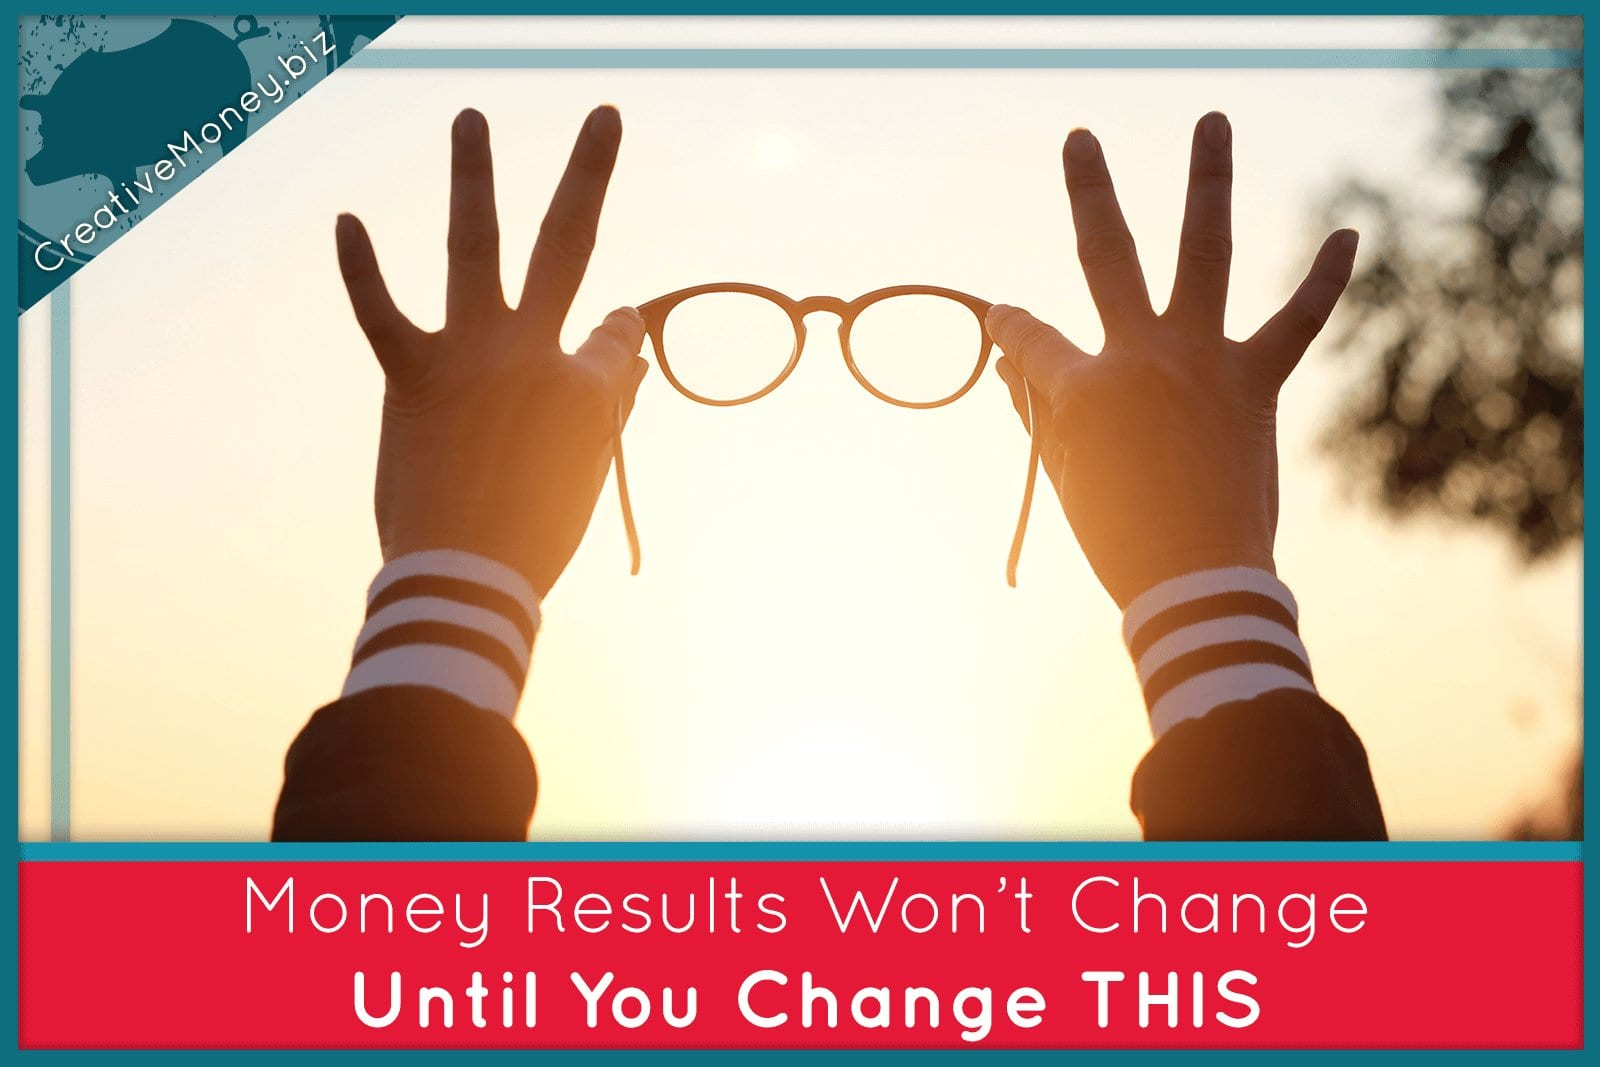 Money results won't change until you change THIS